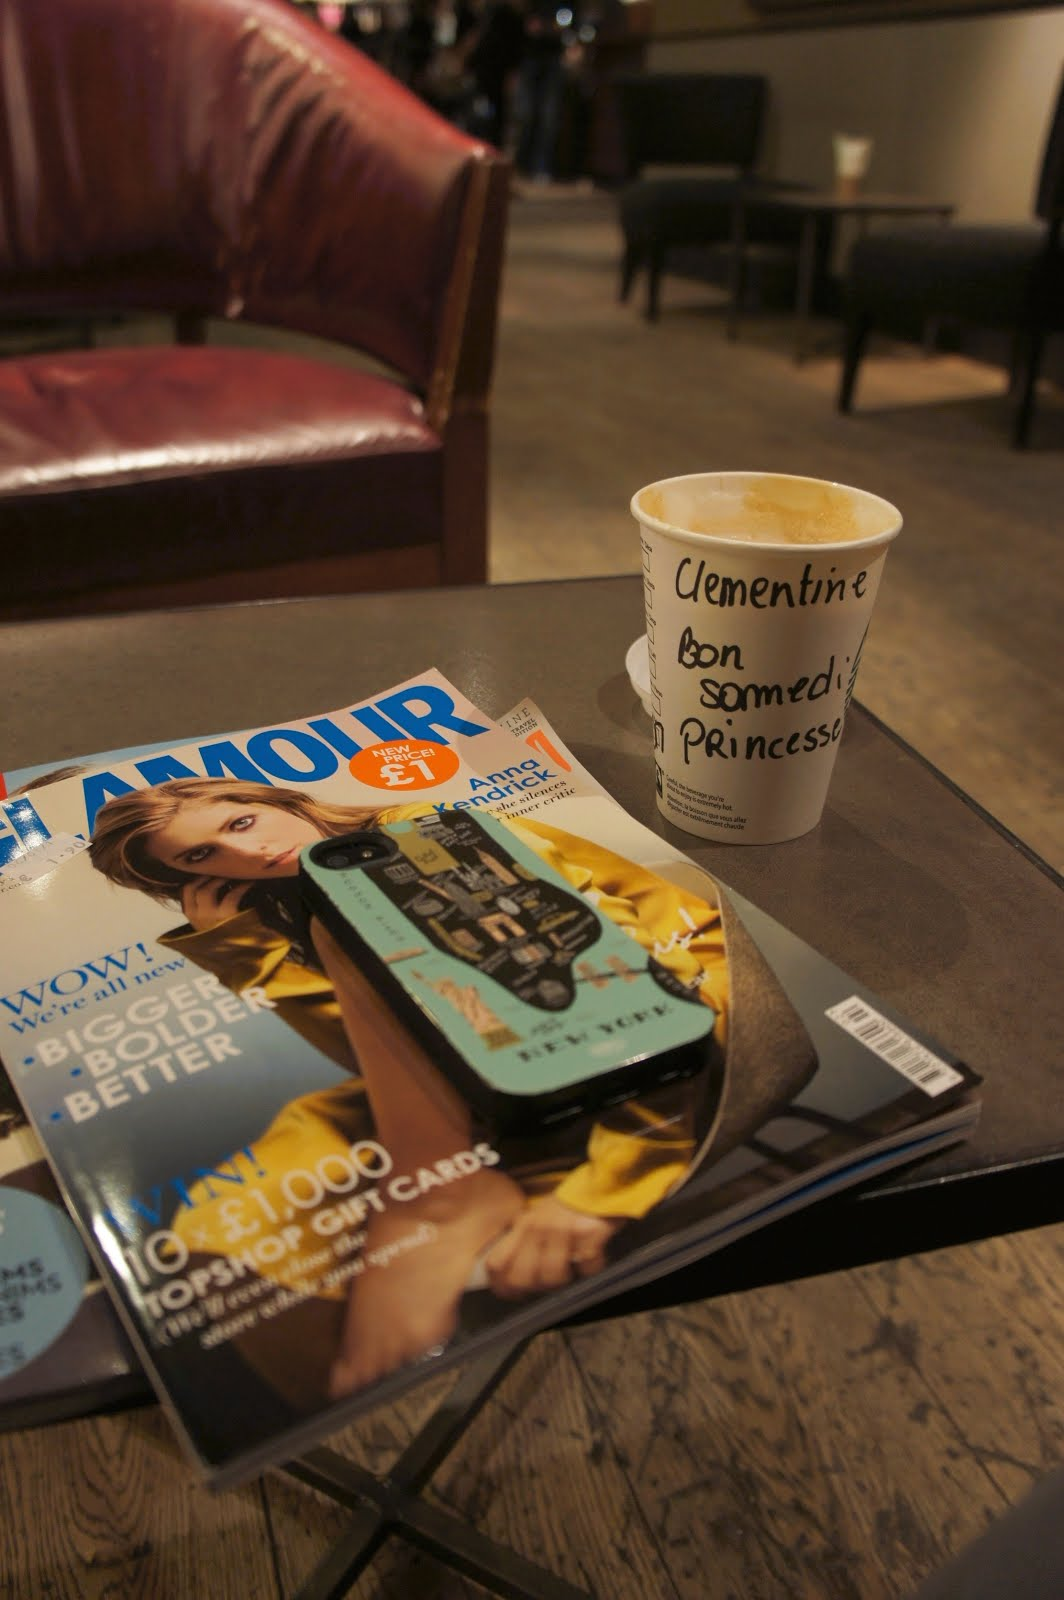 Saturday mornings at Starbucks with my favourite magazines, Glamour UK, Red UK and God Housekeeping. Starbucks Cup, caramel latte, bon samedi princesse